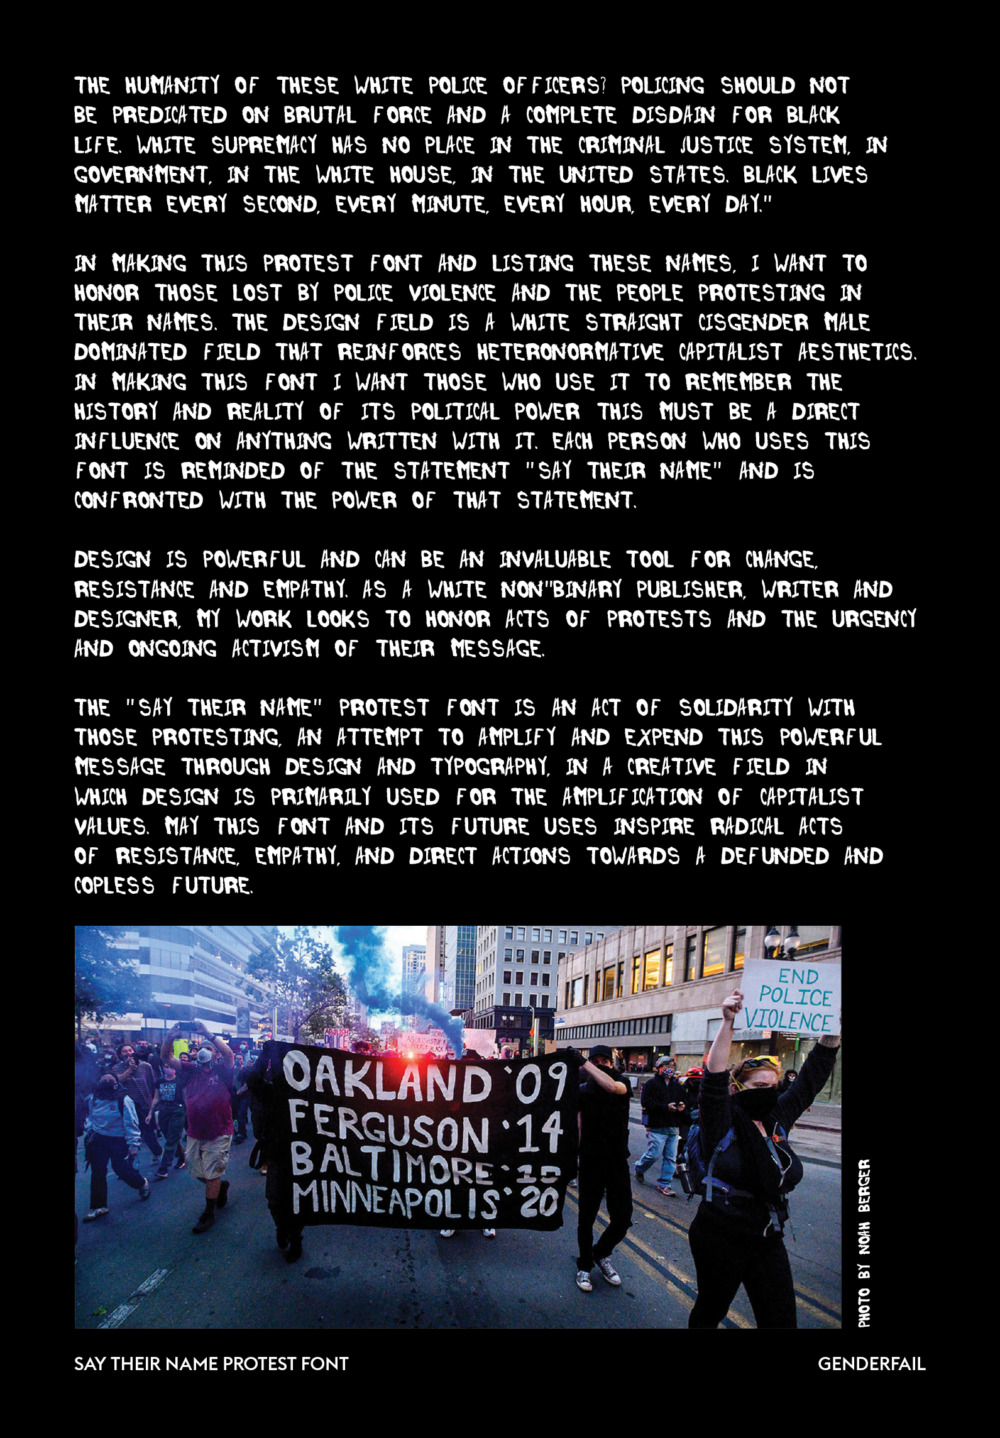 "The majority of the page is text continued from the previous page. It is included below. There is one photograph located at the bottom of the page. It appears to be of a Black Lives Matter protest. Protestors are walking down the middle of a street while holding signs and banners and waving blue smoke. The only two legible signs and banners read: ""OAKLAND '09, FERGUSON '14, BALTIMORE '15, 'MINNEAPOLIS '20"" and ""END POLICE VIOLENCE."""